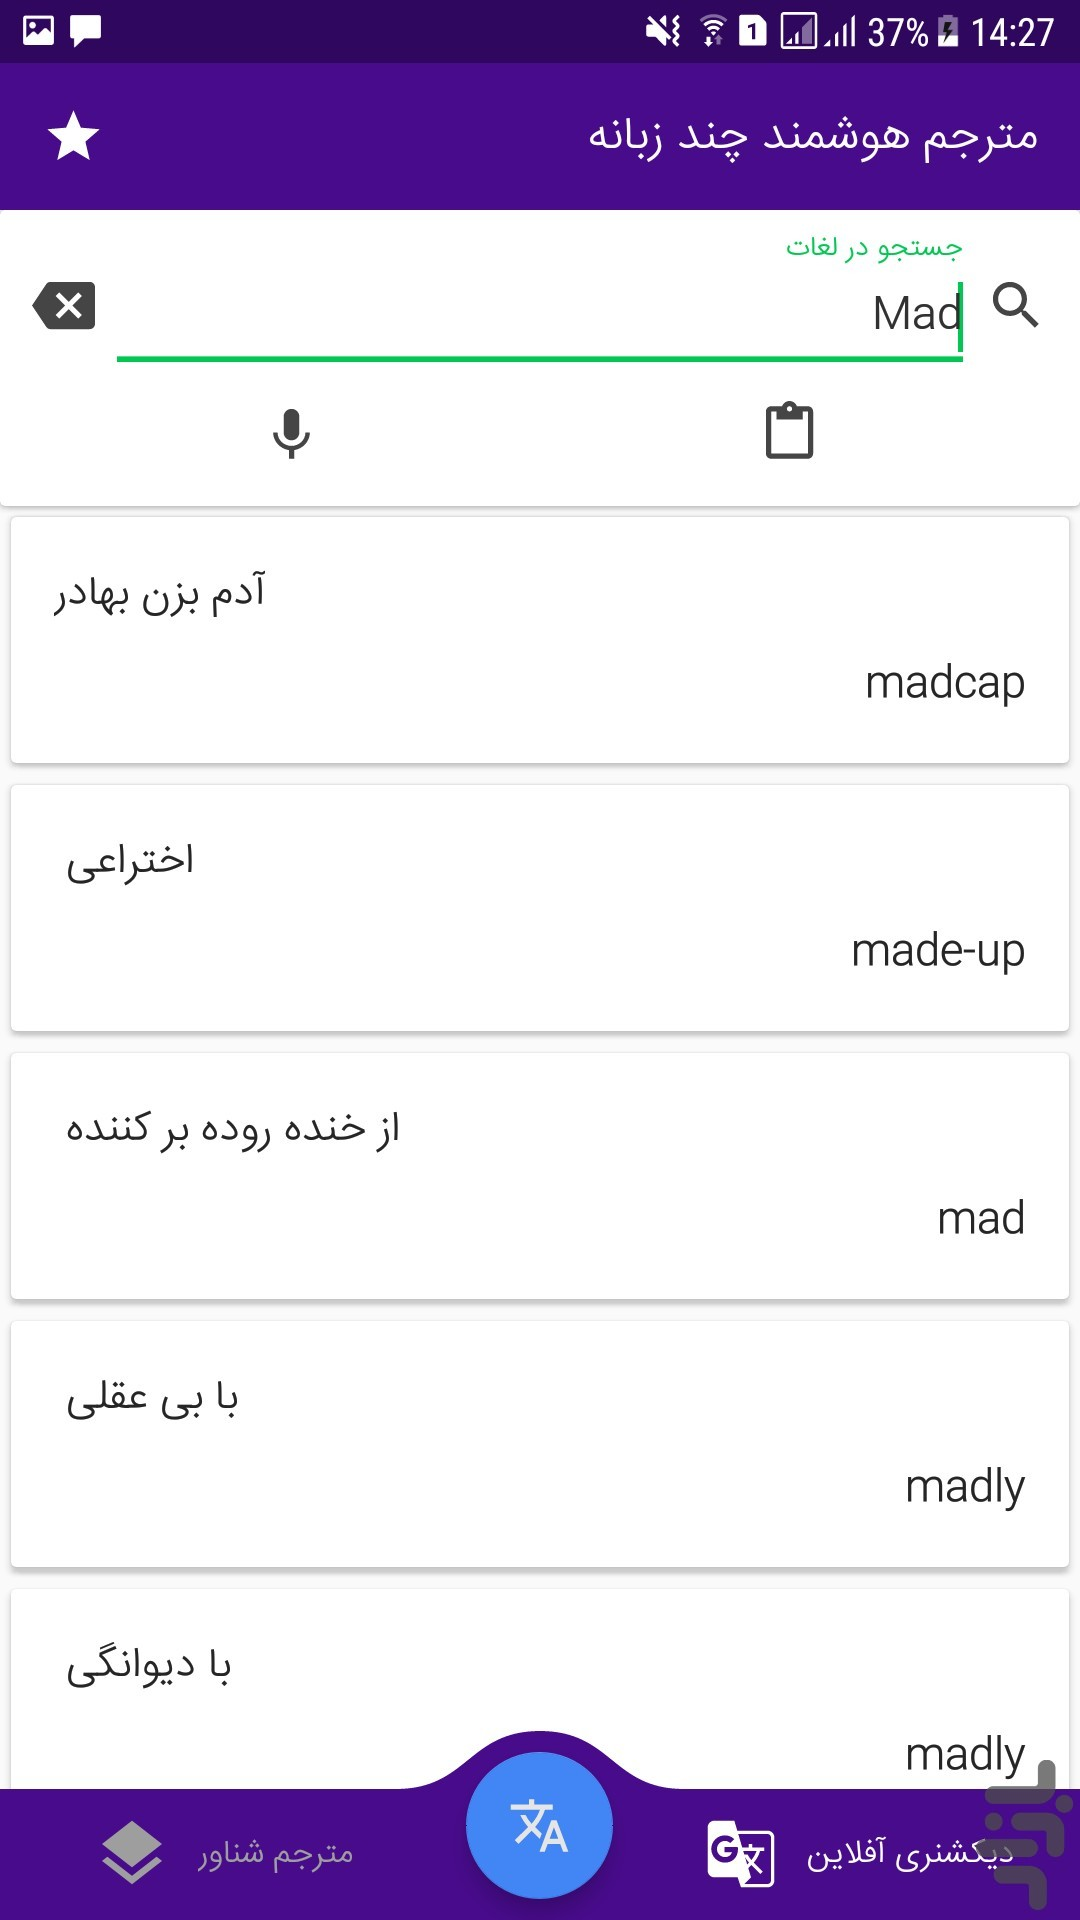 l want to download dictionary